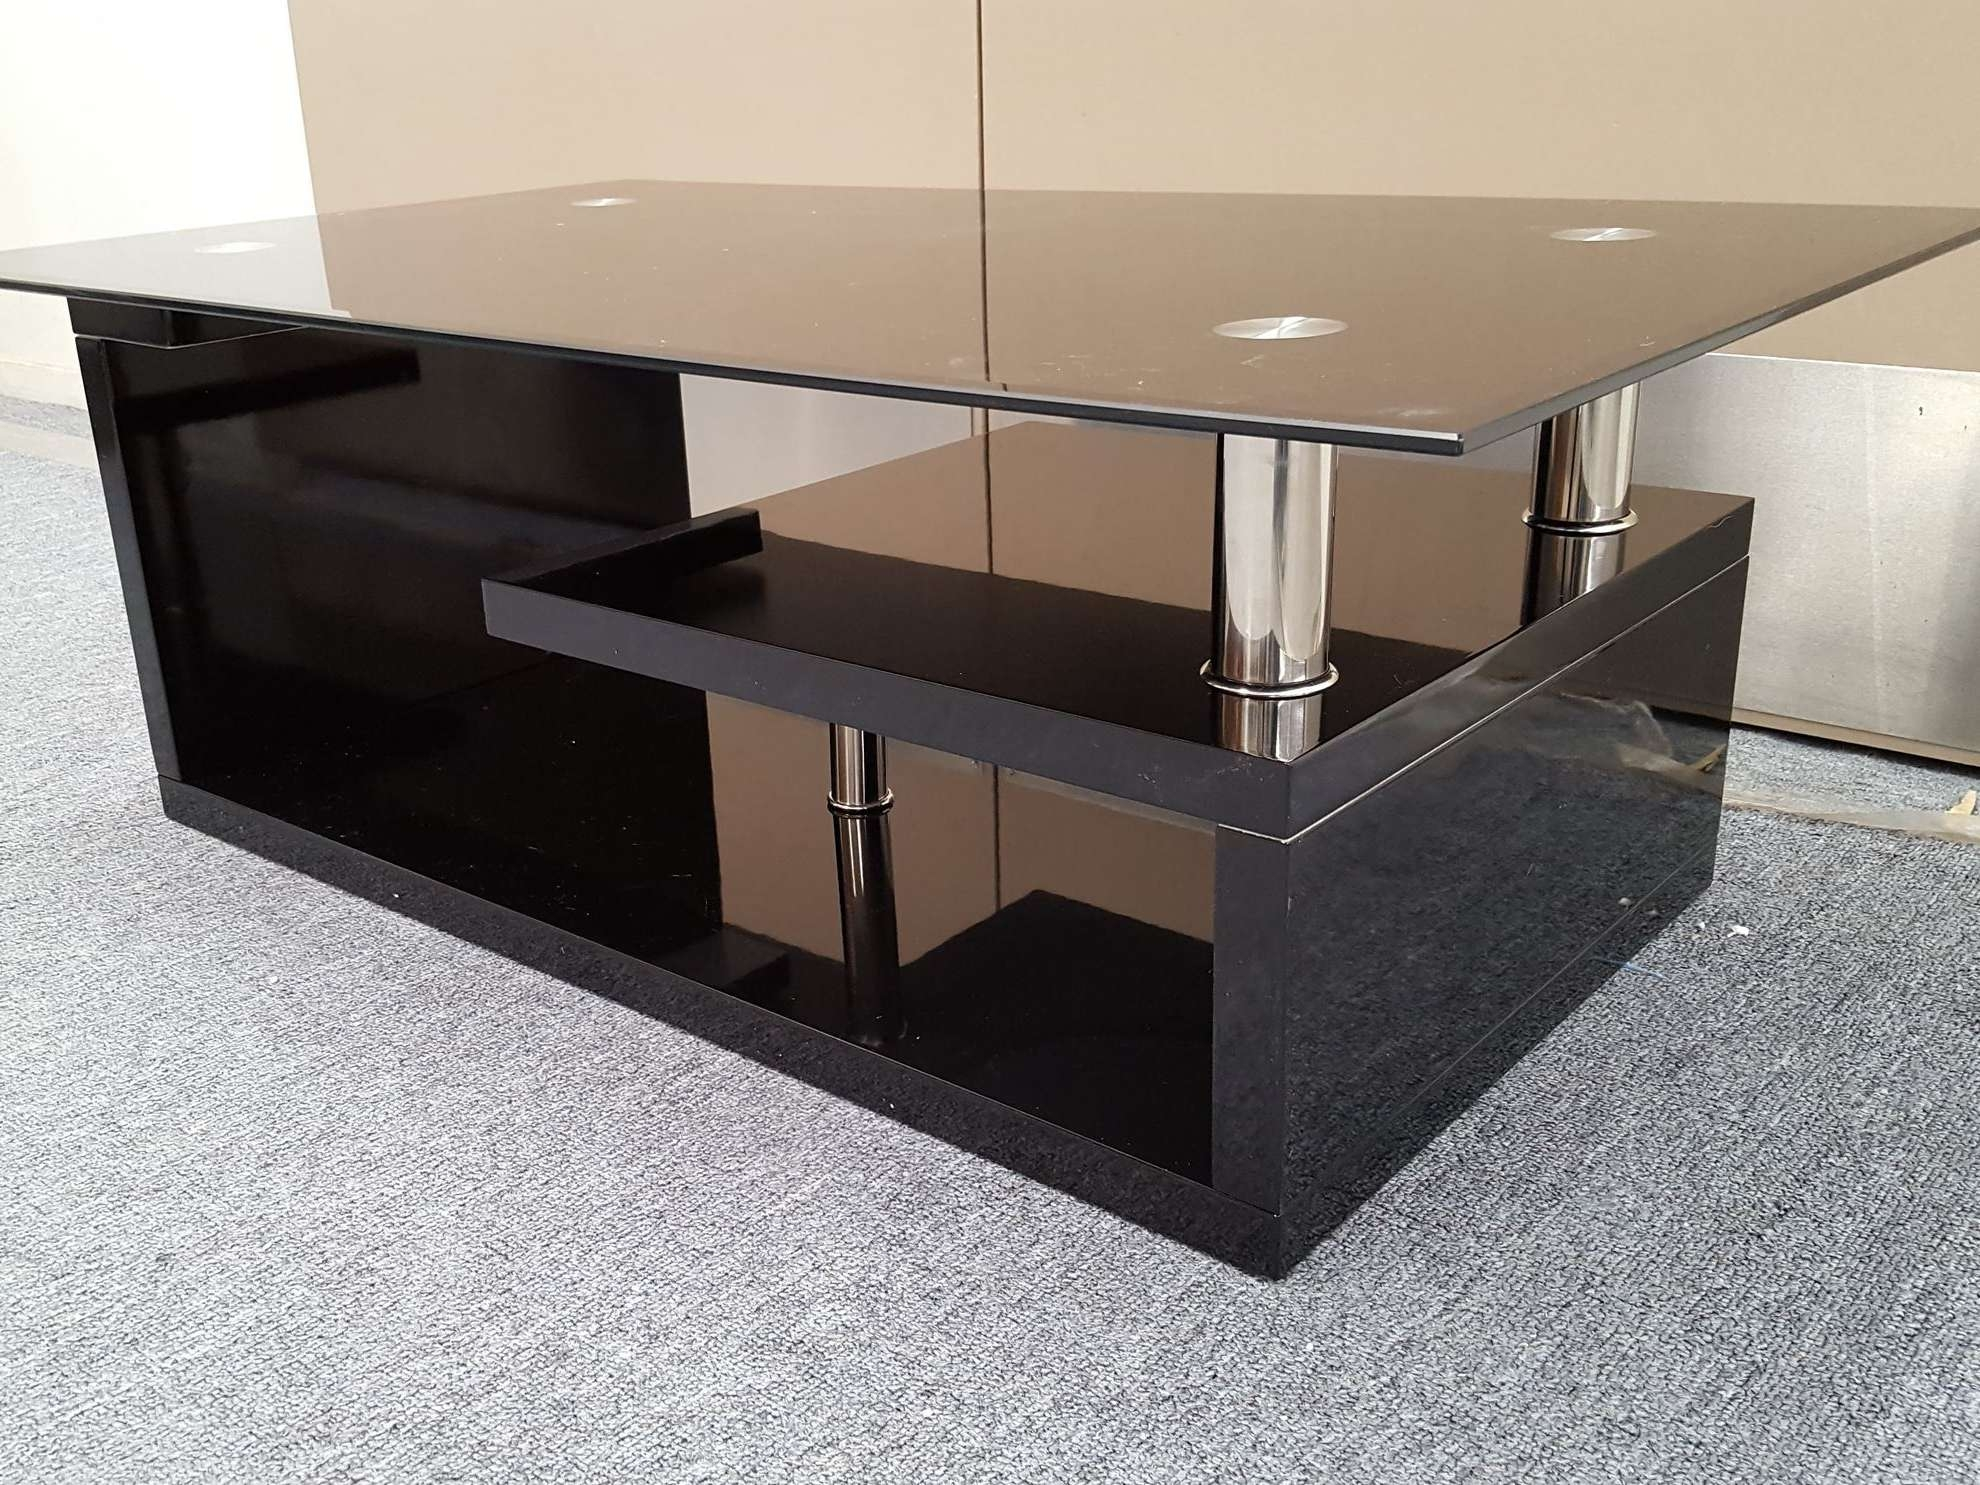 Small Black Coffee Tables Displaying Photos Of Glass And Black Coffee Tables View